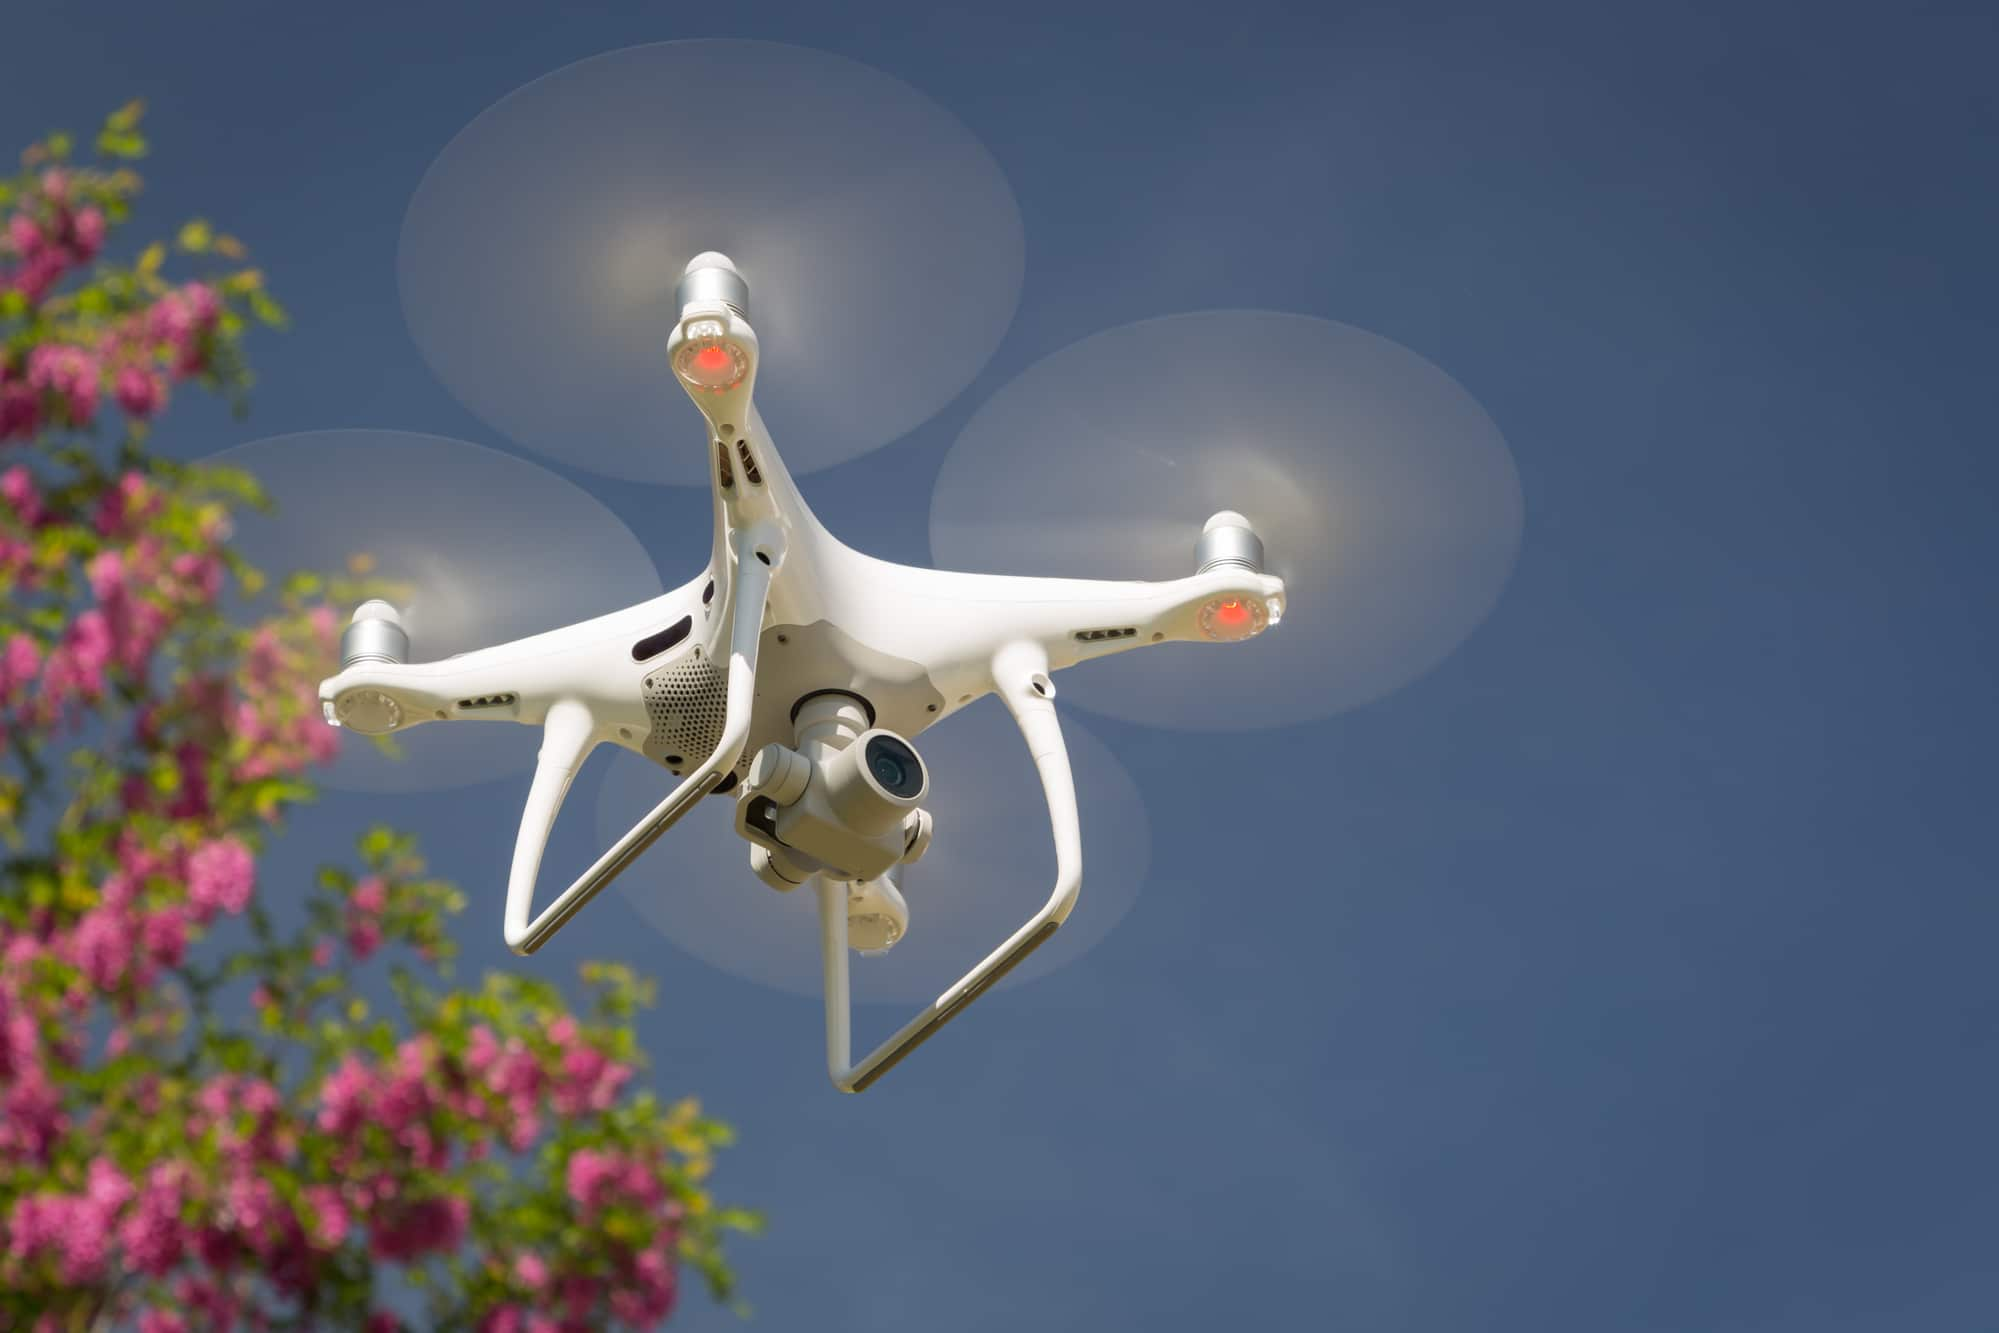 Who Invented the Quadcopter Drone? - BestSpy